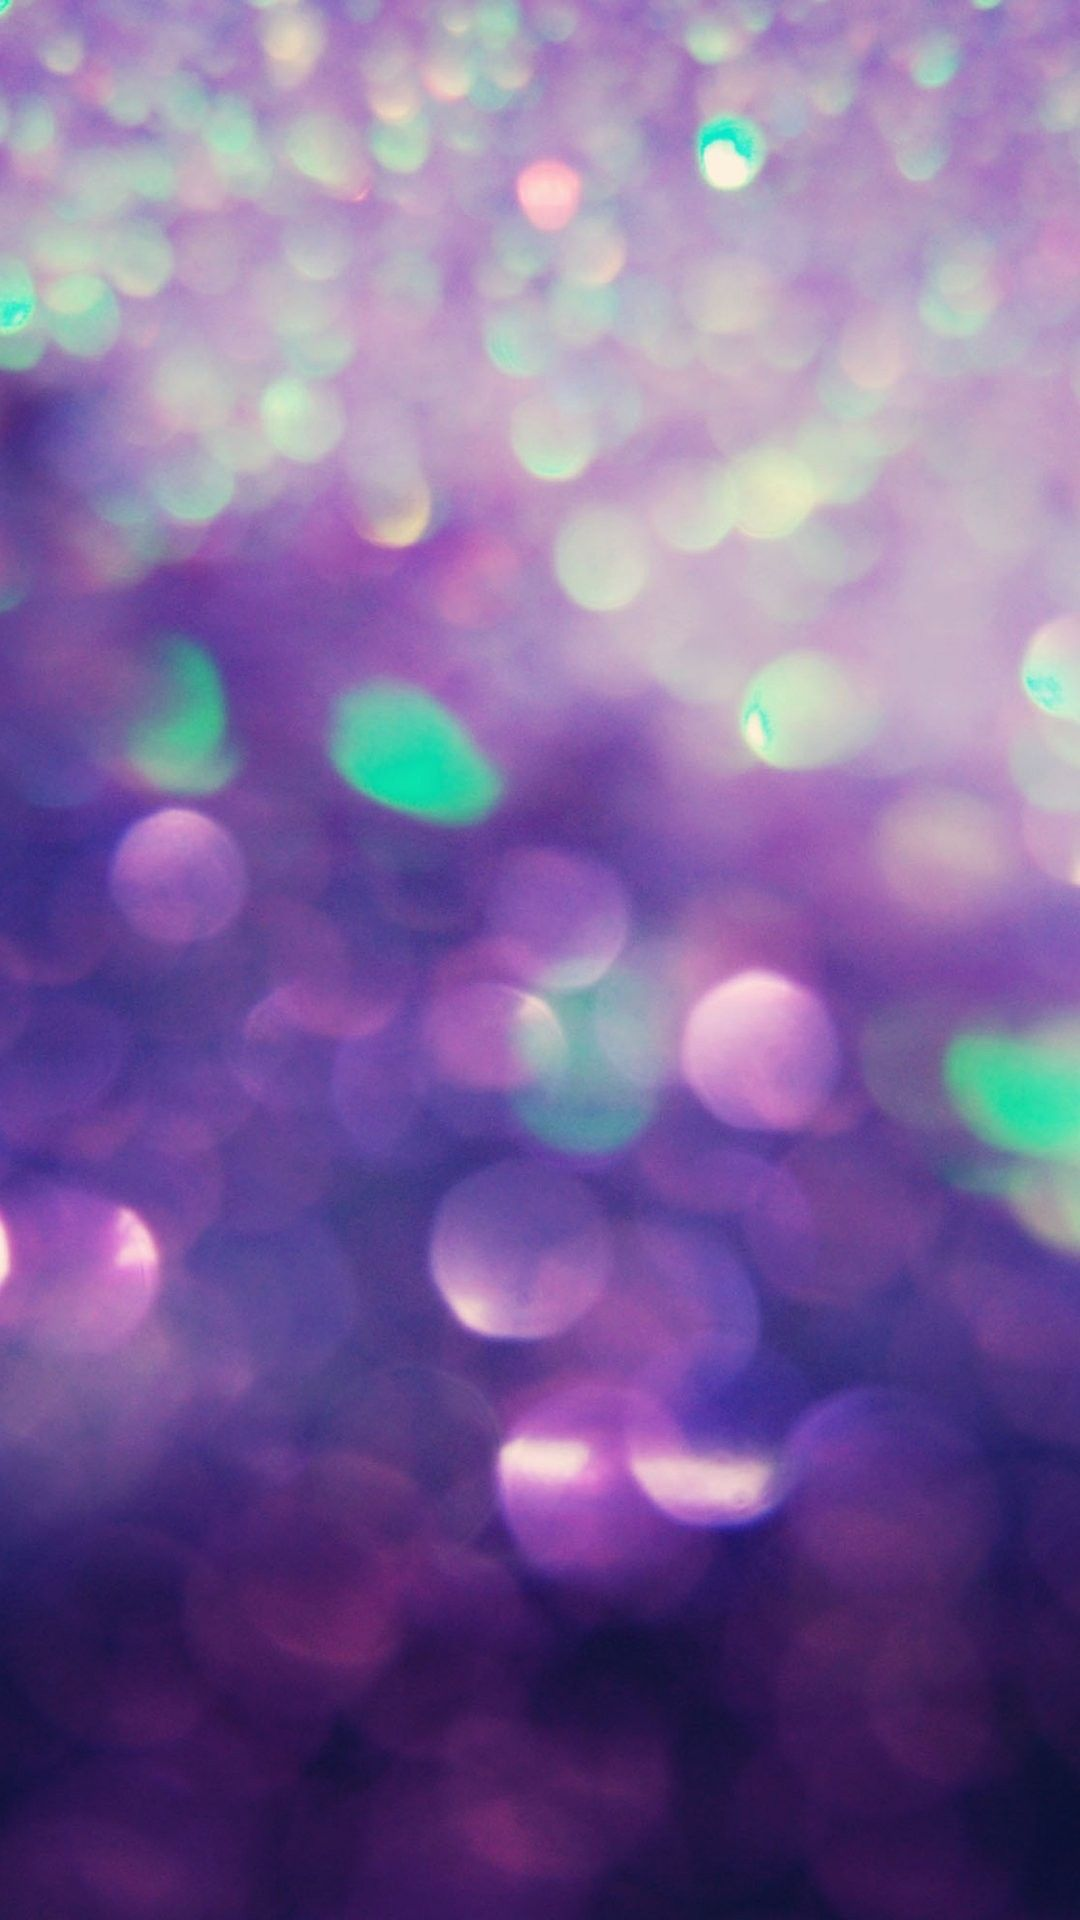 Sparkly Iphone 6 Plus Wallpaper 24031 Abstract Iphone 6 Plus